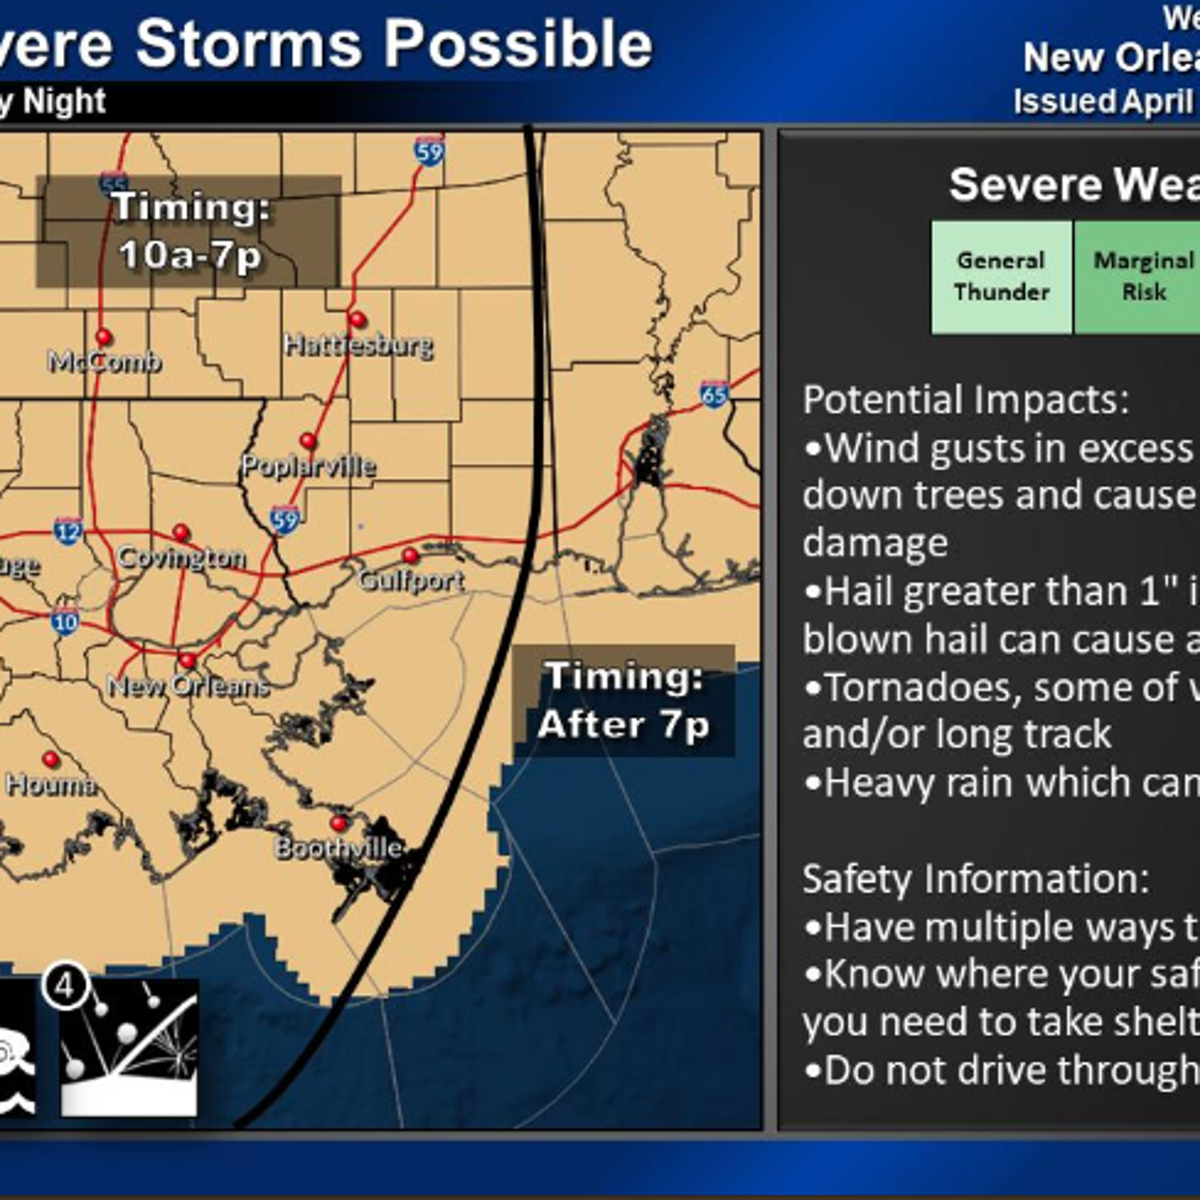 New Orleans area faces worst weather risk Thursday afternoon